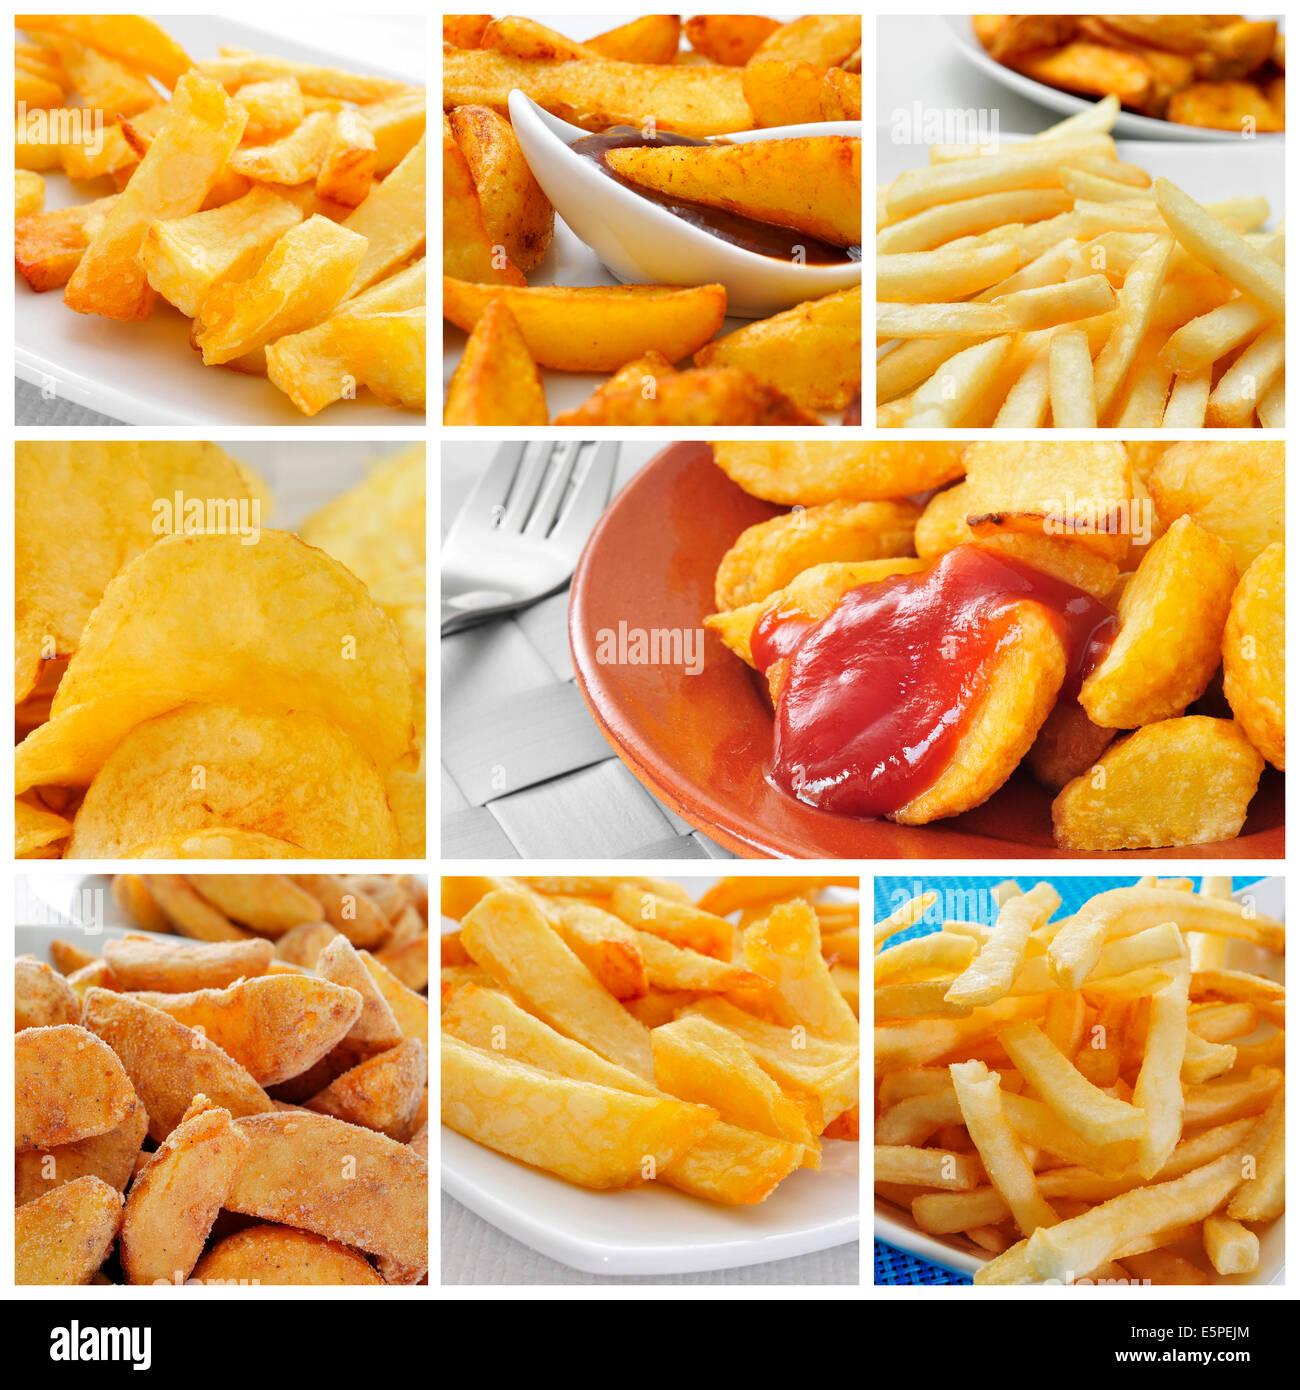 A Collage Of Some Pictures Of Different Types Of Fried